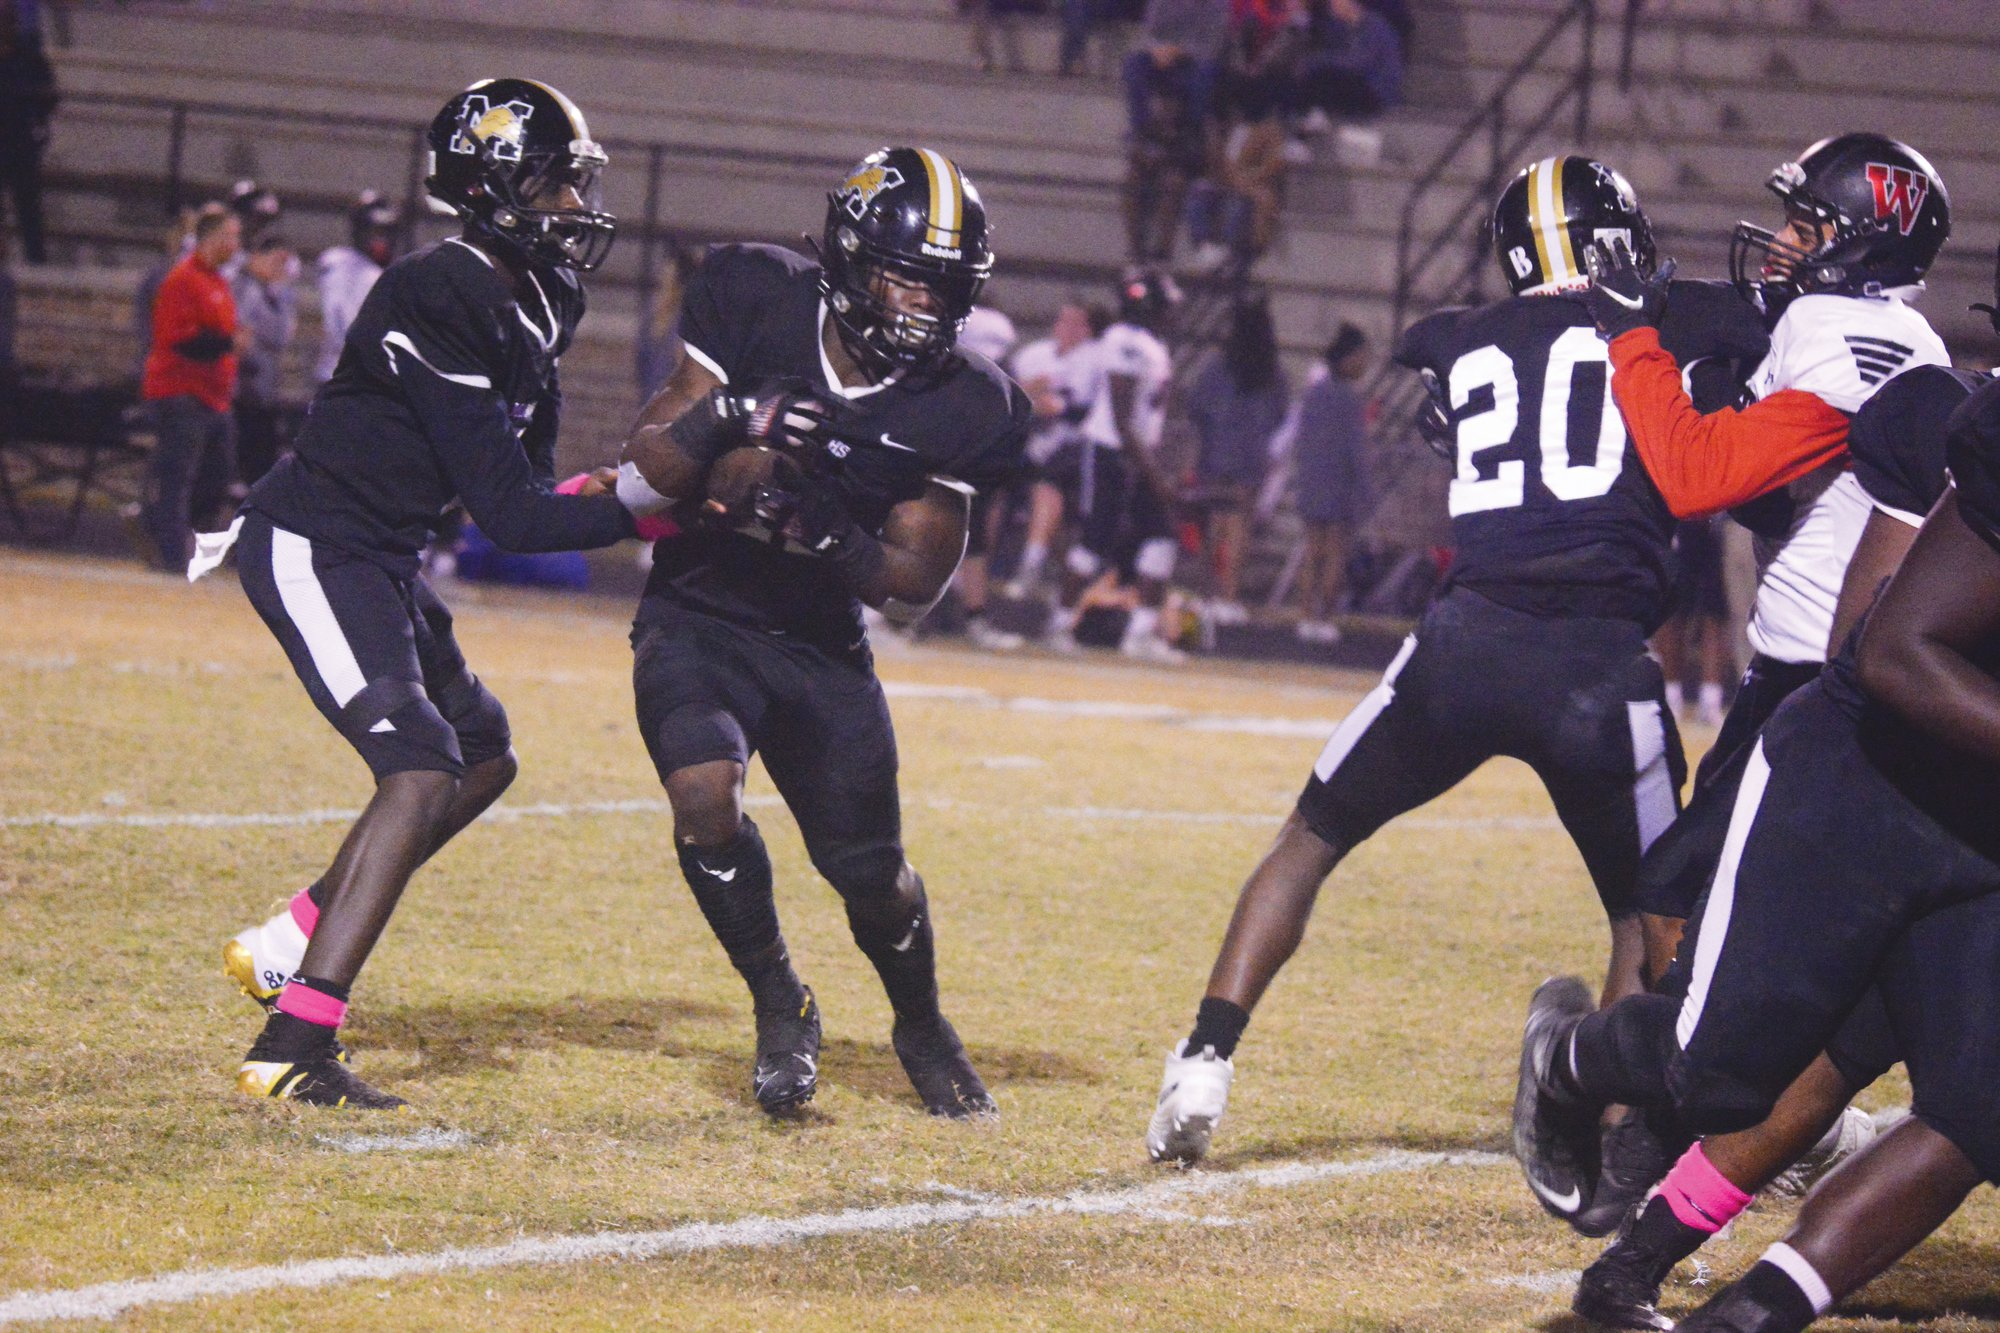 Manning quarterback Justin Daniels, left, hands the ball off to Aaron Smith during their 47-22 win over Waccamaw on Friday. Smith ran for four touchdowns on his way to Offensive Player of the Week honors.